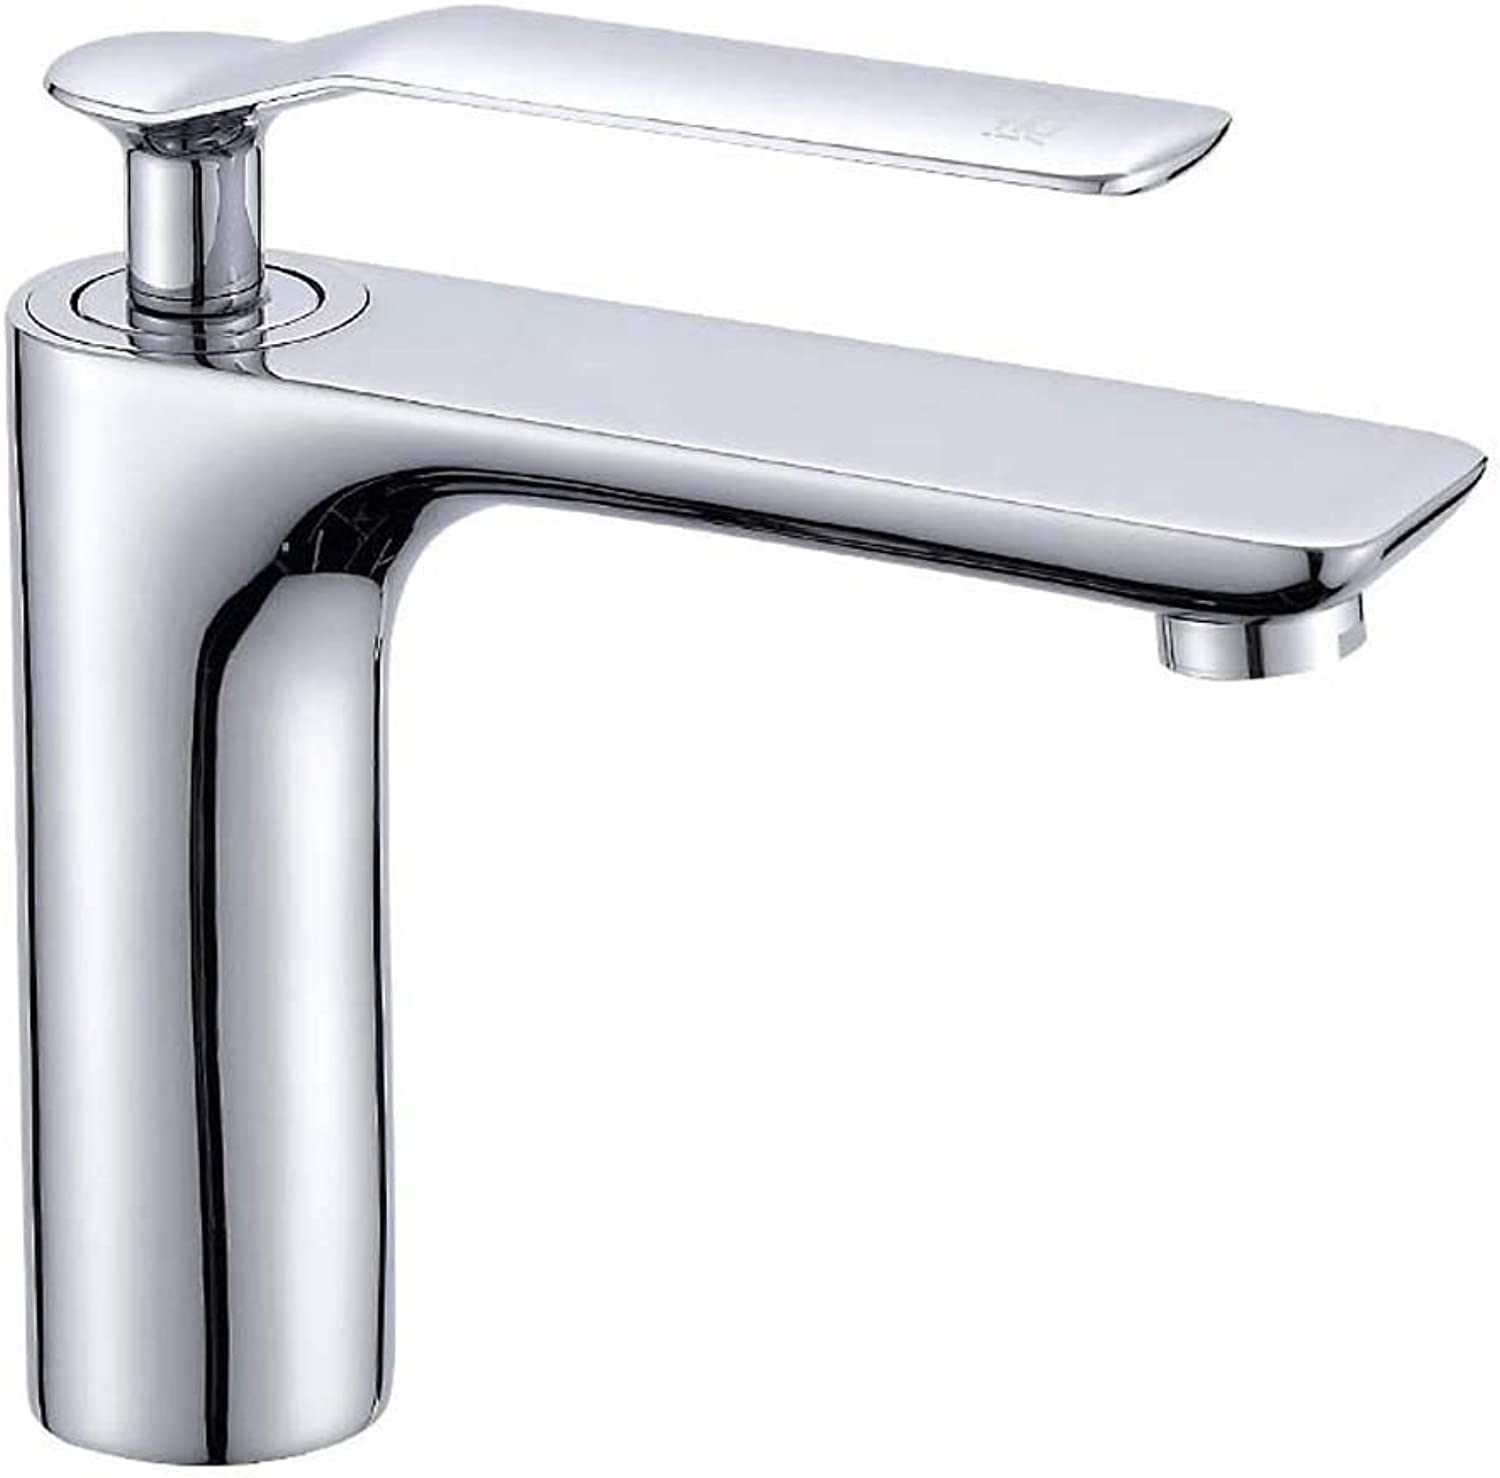 Wash Basin Faucet Lengthen Hot and Cold Paint, for Bathrooms Bathtub Toilet Washbasin with Water Pipes (color     Electroplating)